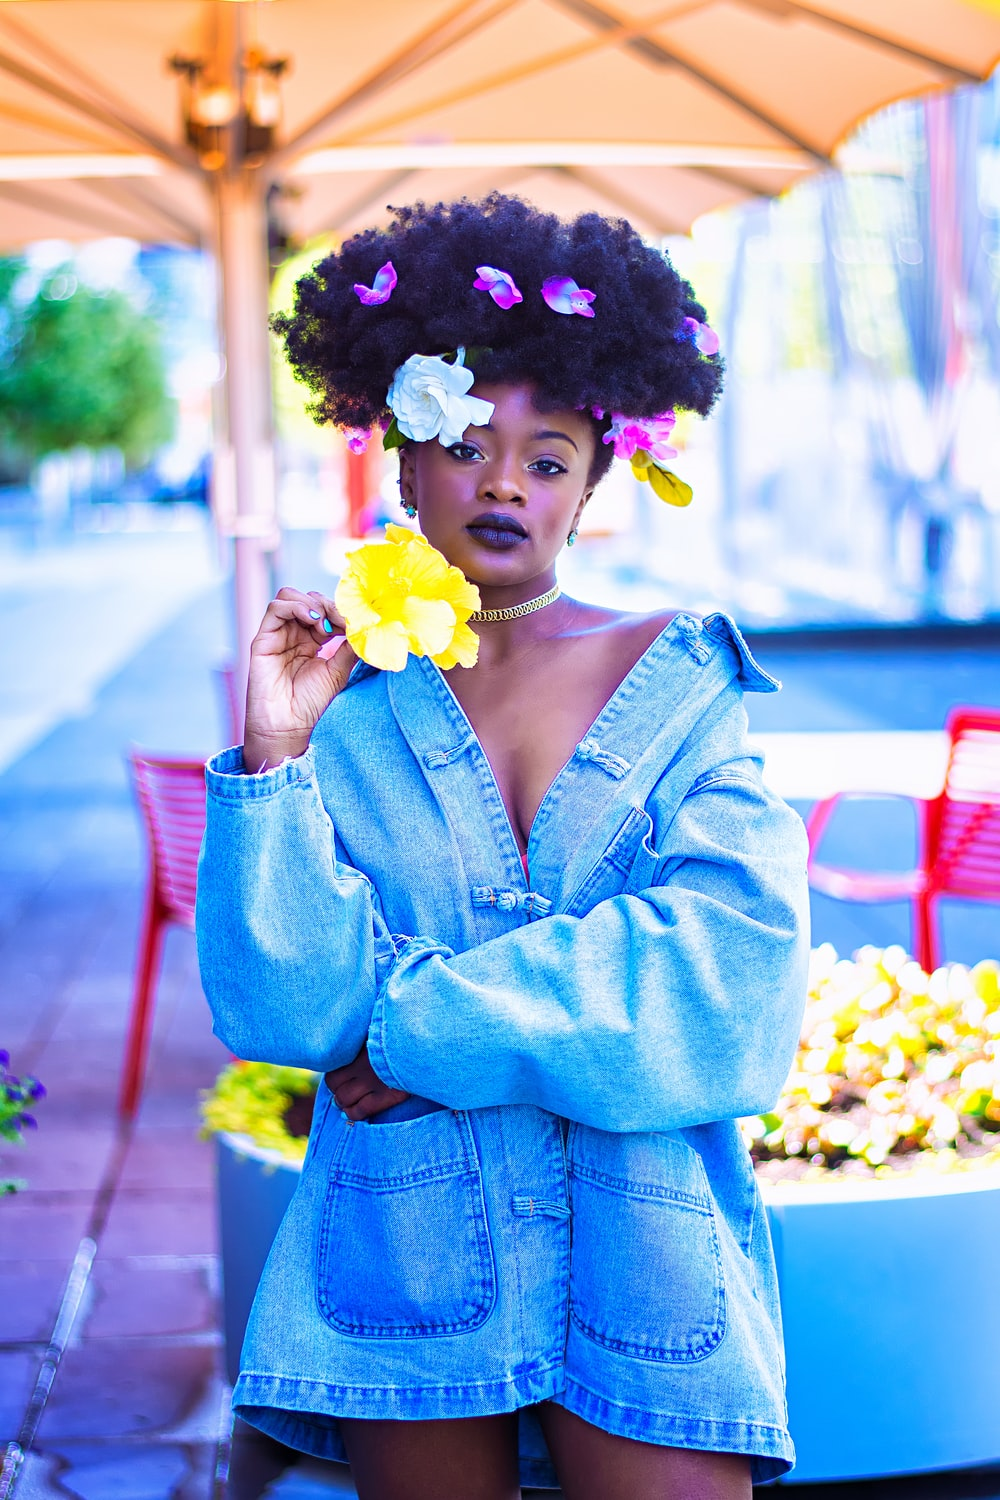 woman wearing blue denim jacket with flowers on hair